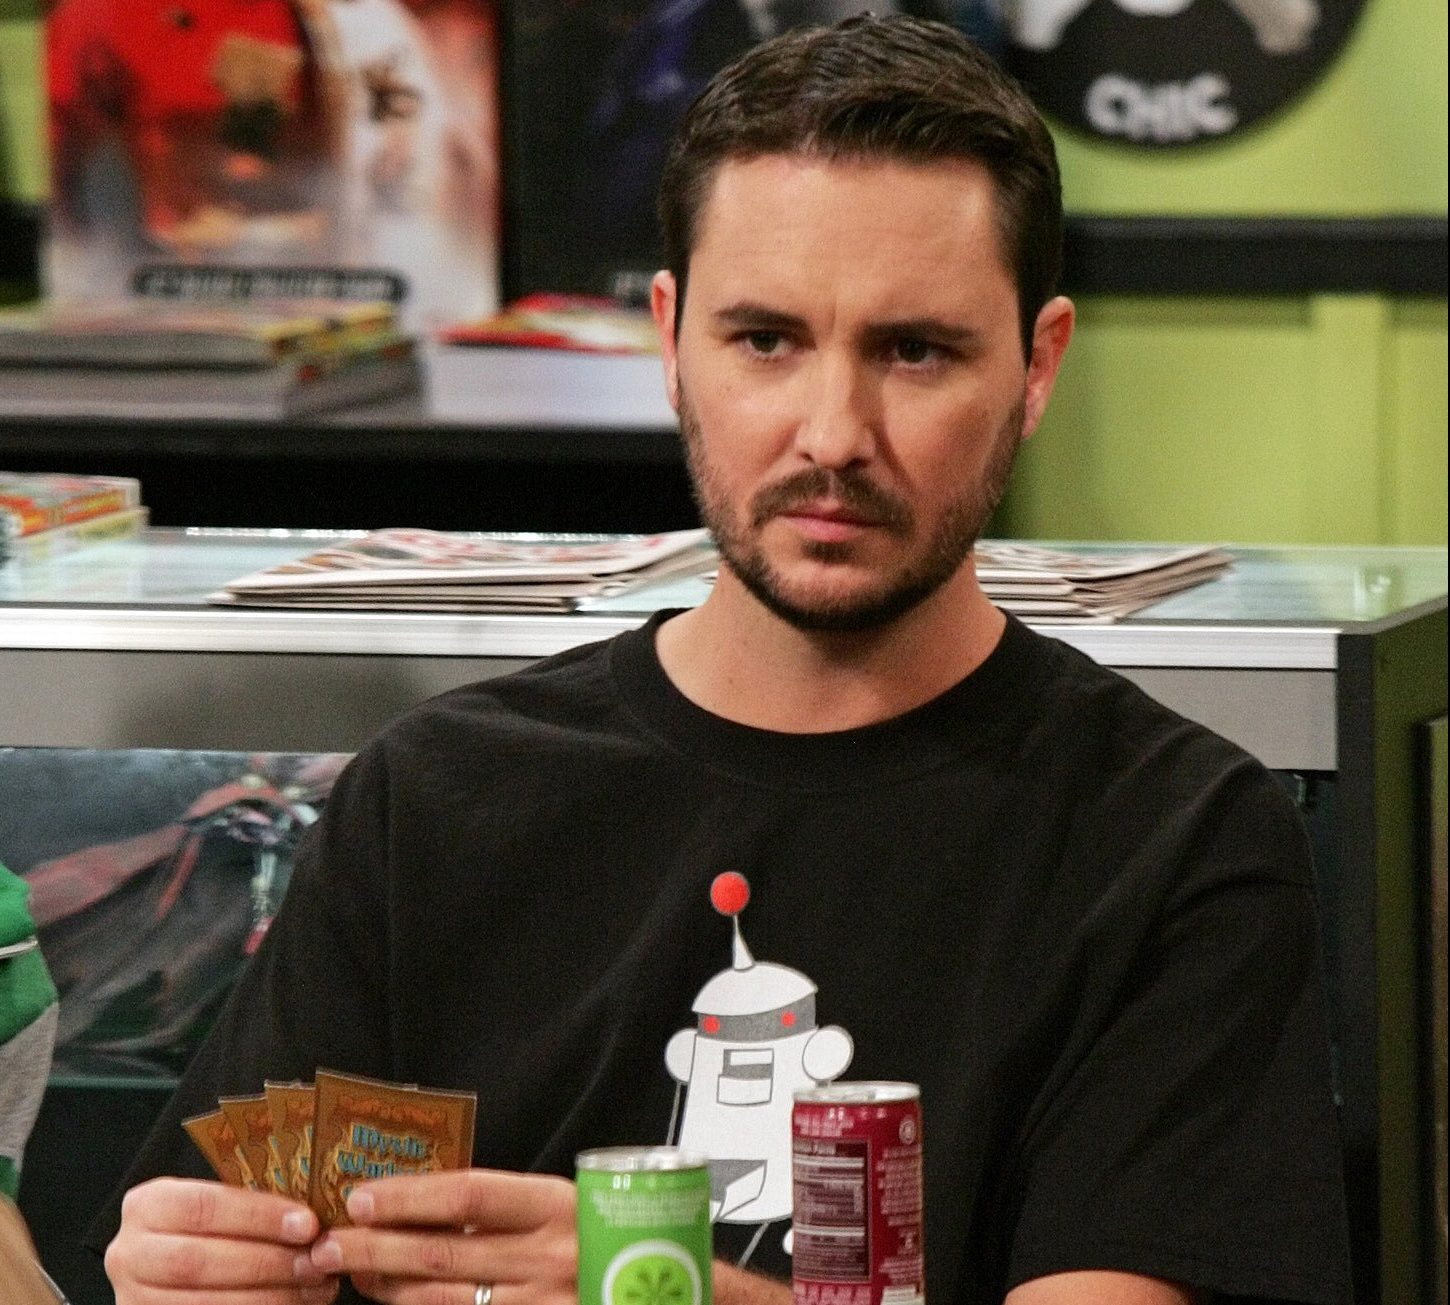 The Big Bang Theory may have waved farewell to Wil Wheaton for good: 'I got to say goodbye'